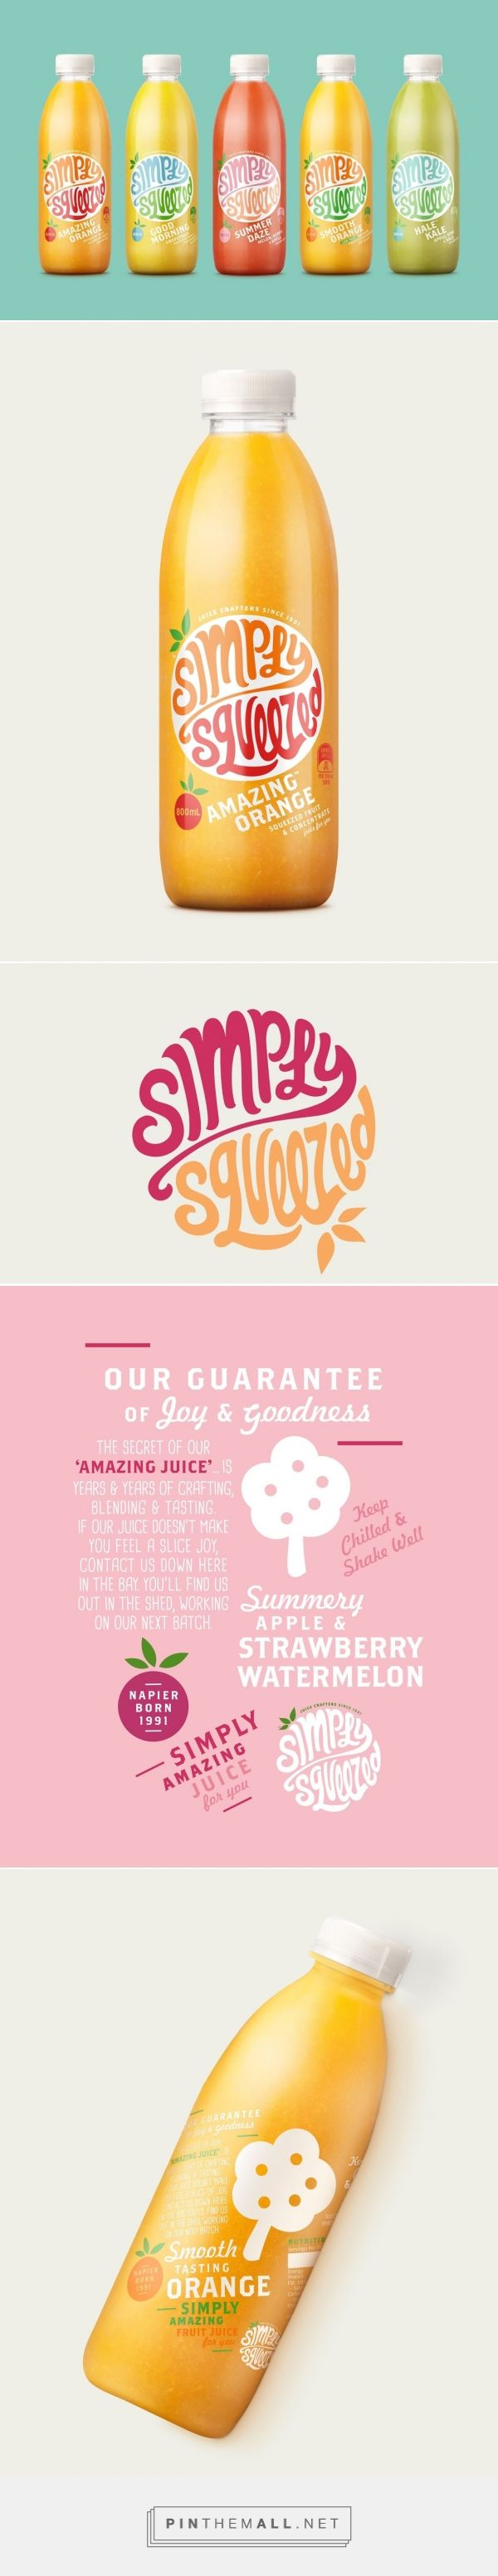 Simply Squeezed ‪‎Juice‬ ‪‎packaging‬ ‪‎design‬ by Dow Design, ‎NewZealand‬)